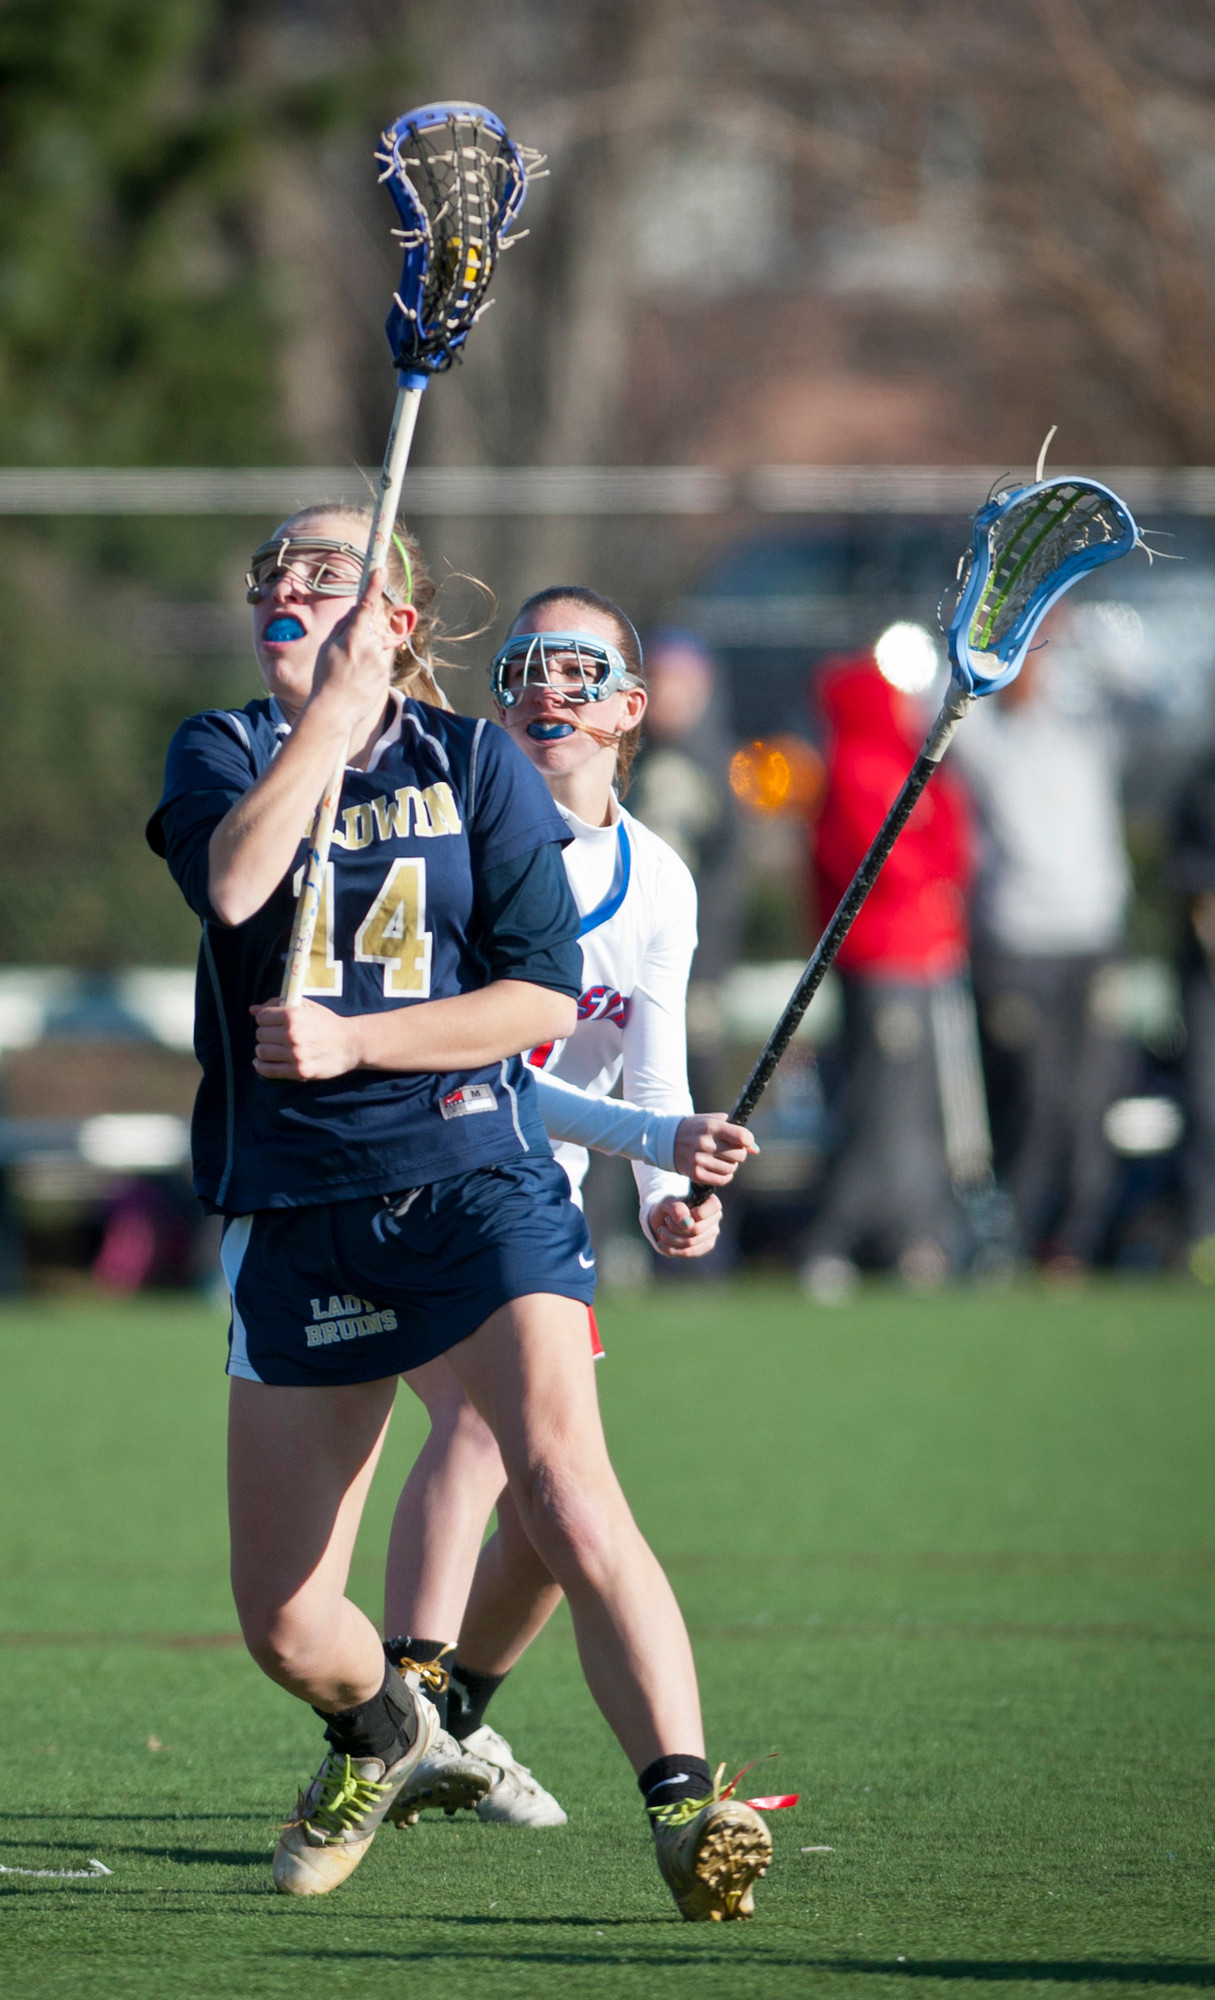 Sophomore Kelsey Cohen opened the season with four goals in Baldwin's 13-11 loss to Seaford.